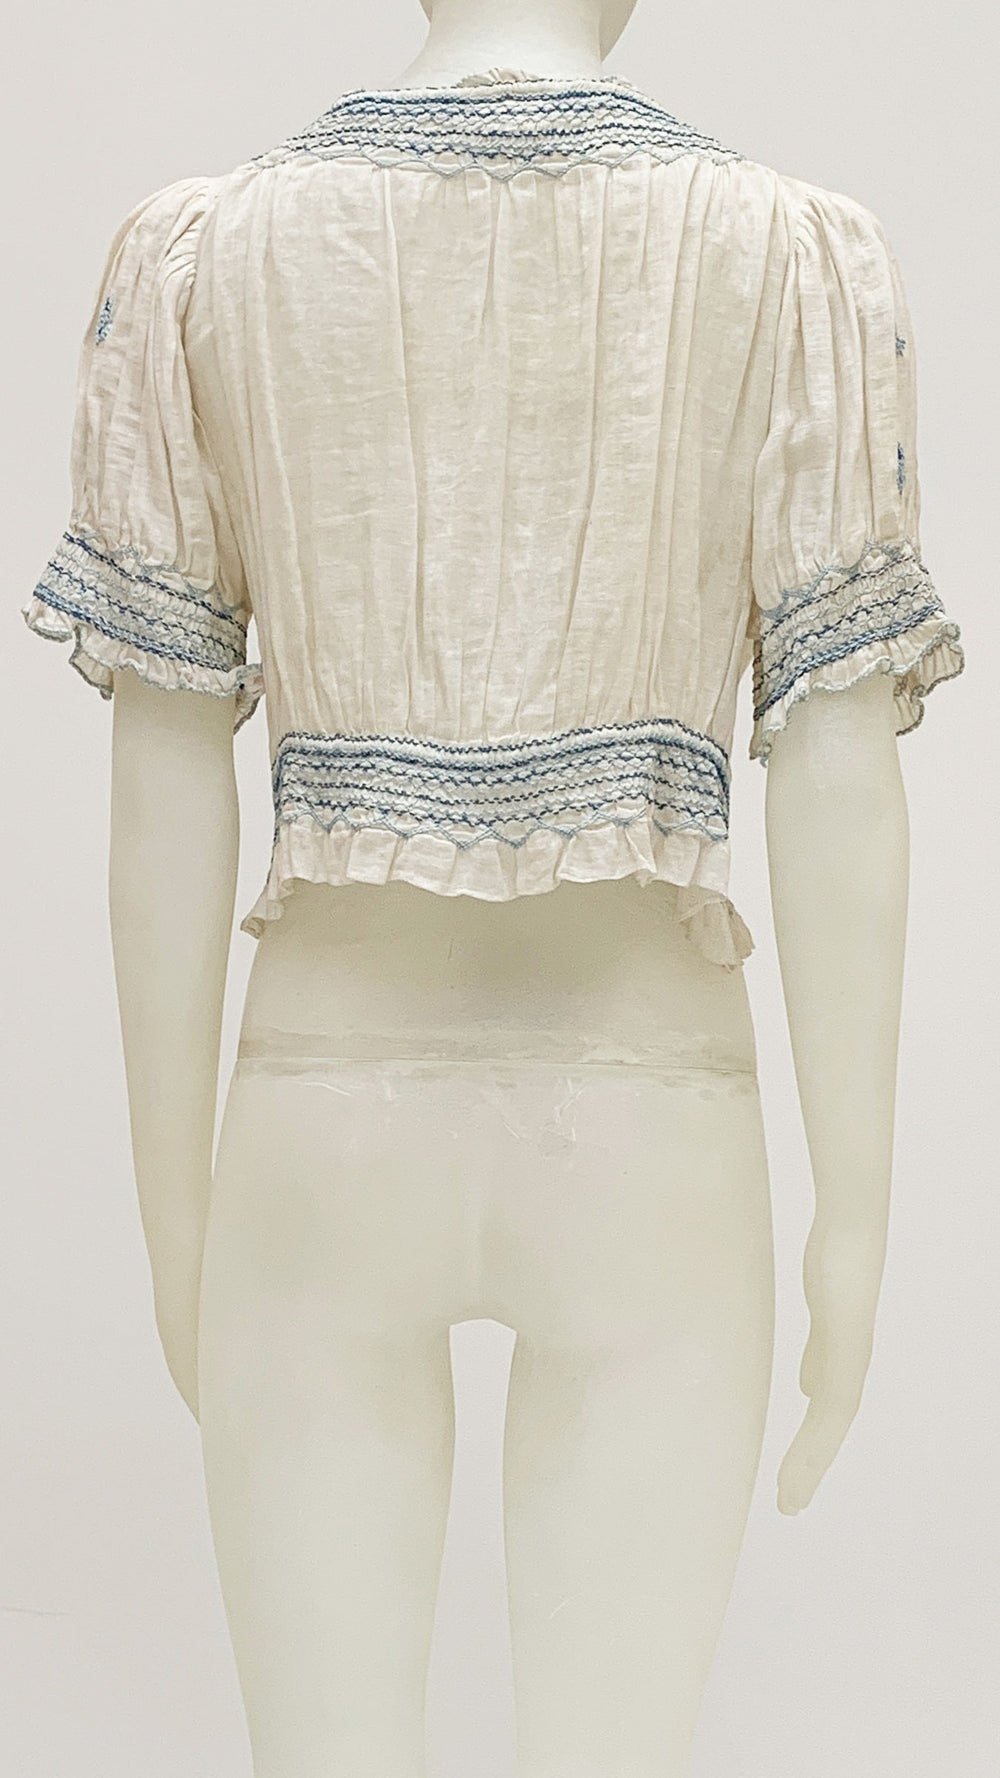 SHORT SLEEVE PEASANT TOP WITH EMBROIDERY - 2